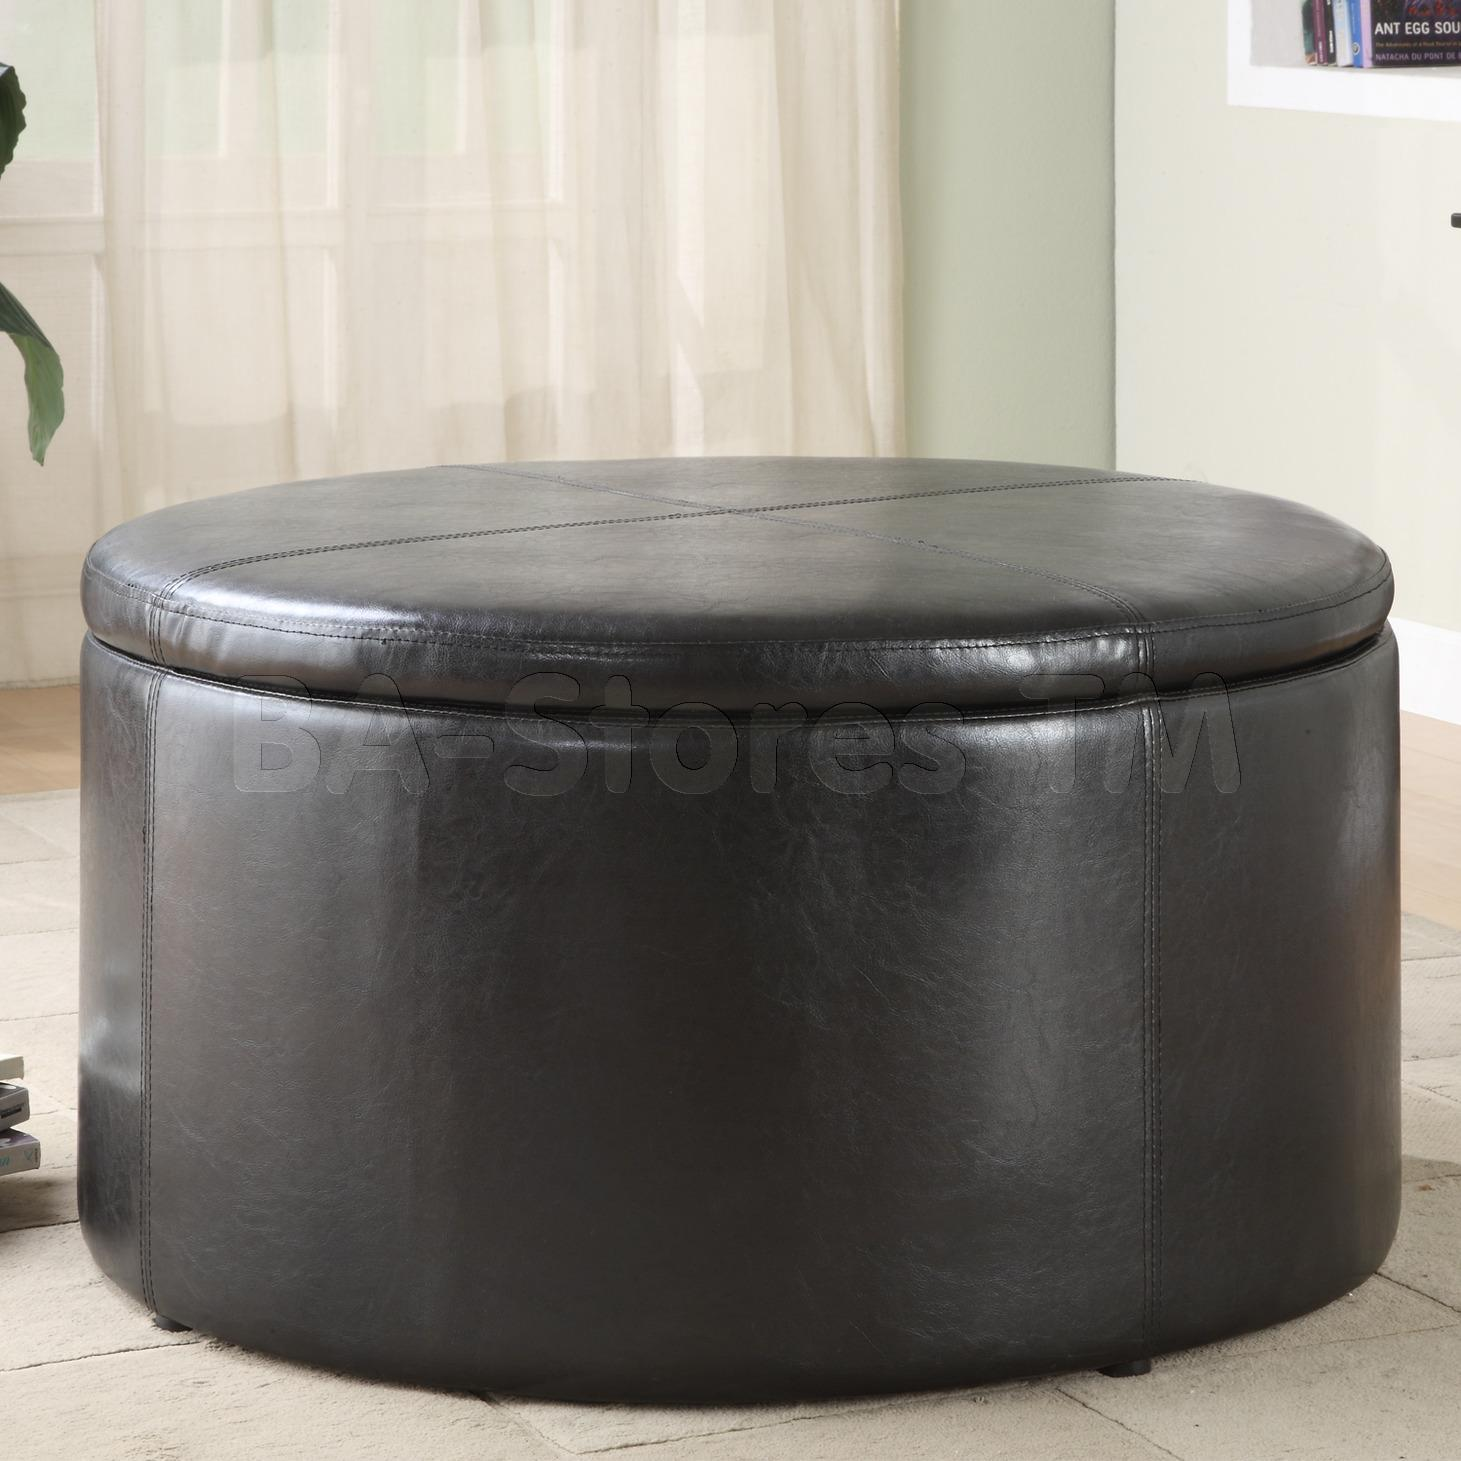 Leather Pouf Ottoman | Padded Coffee Table | Round Storage Ottoman